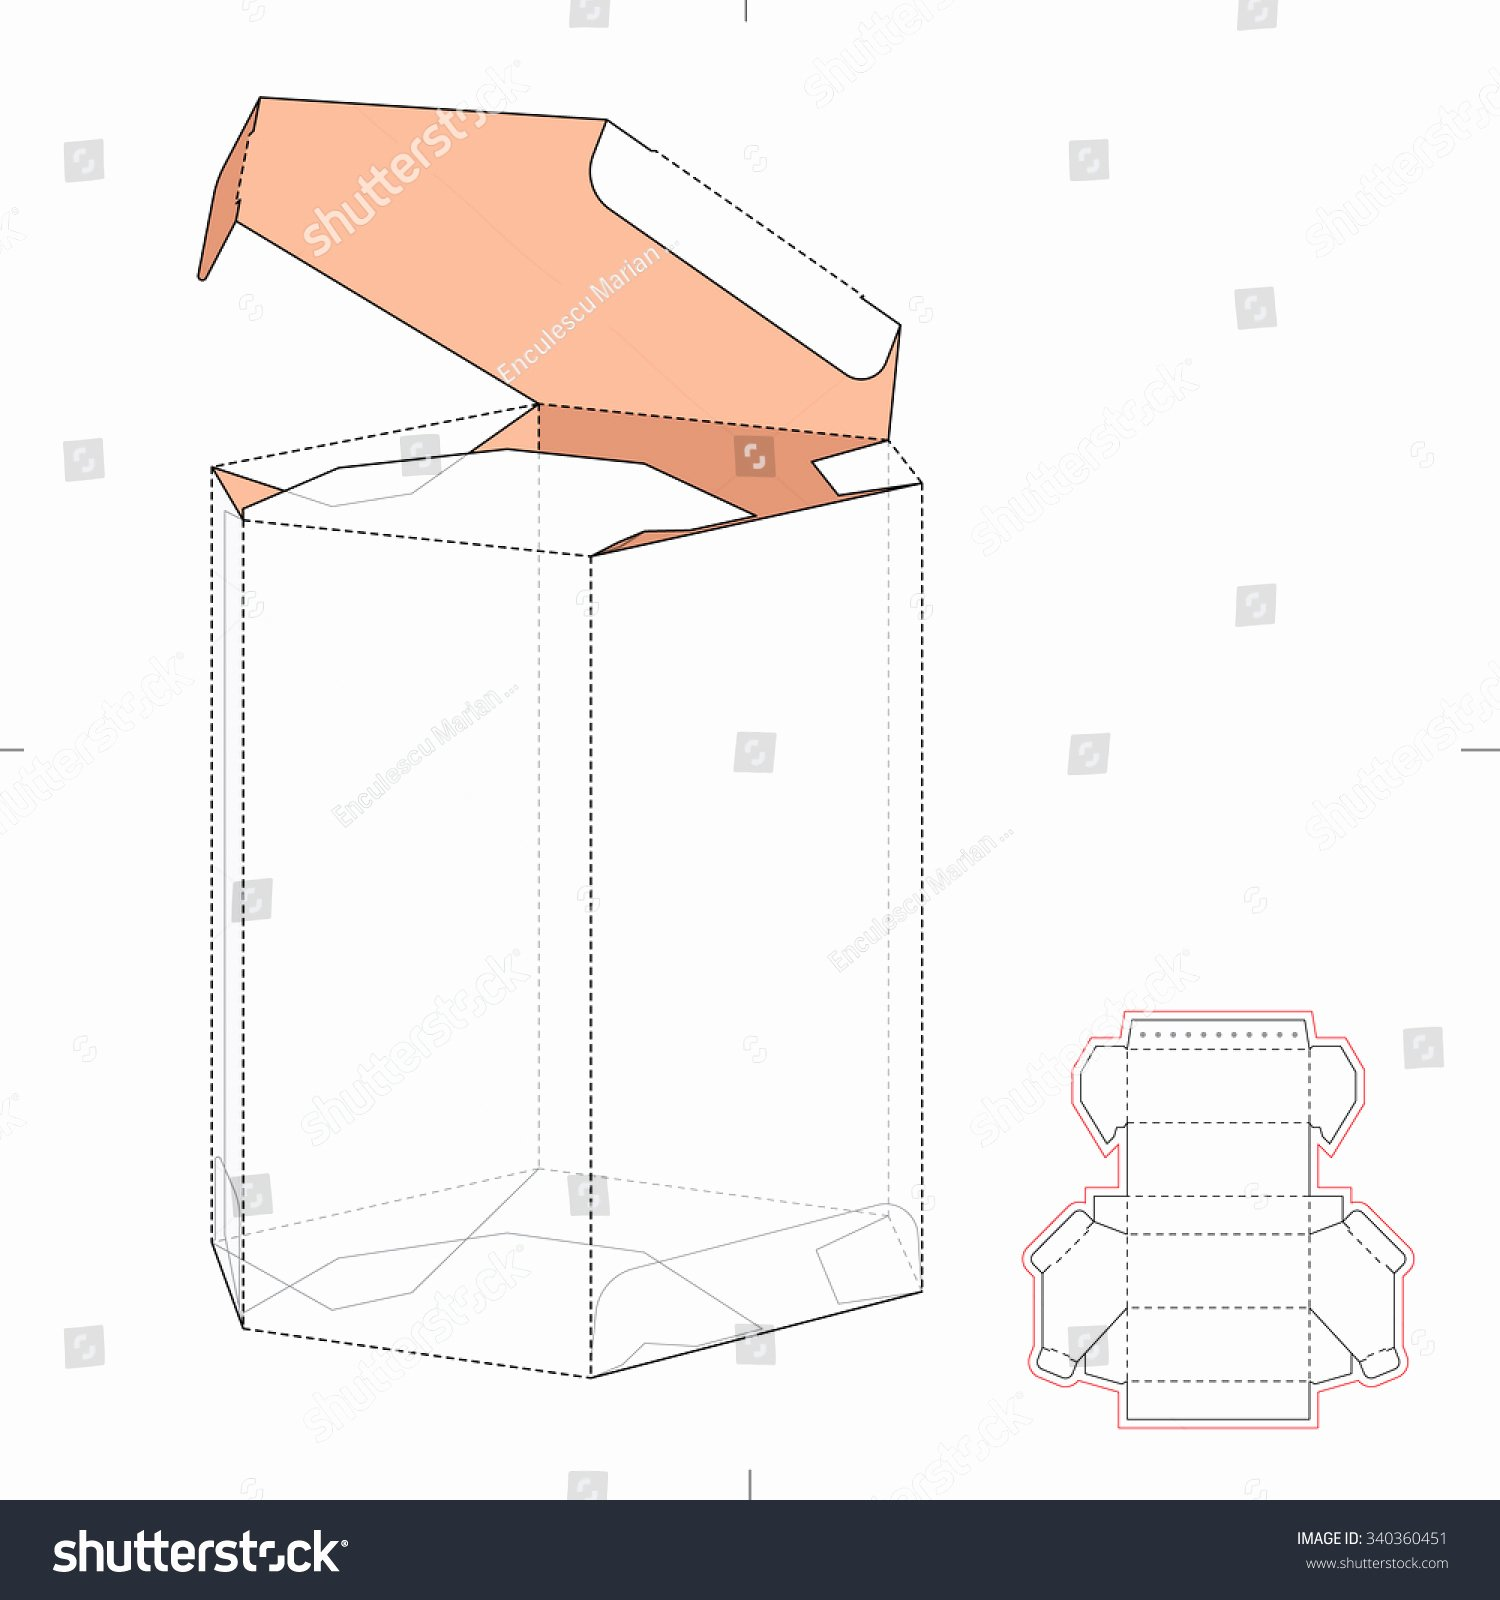 Die Cut Box Templates Elegant Diamond Shaped Box Die Cut Template Stock Vector Shutterstock